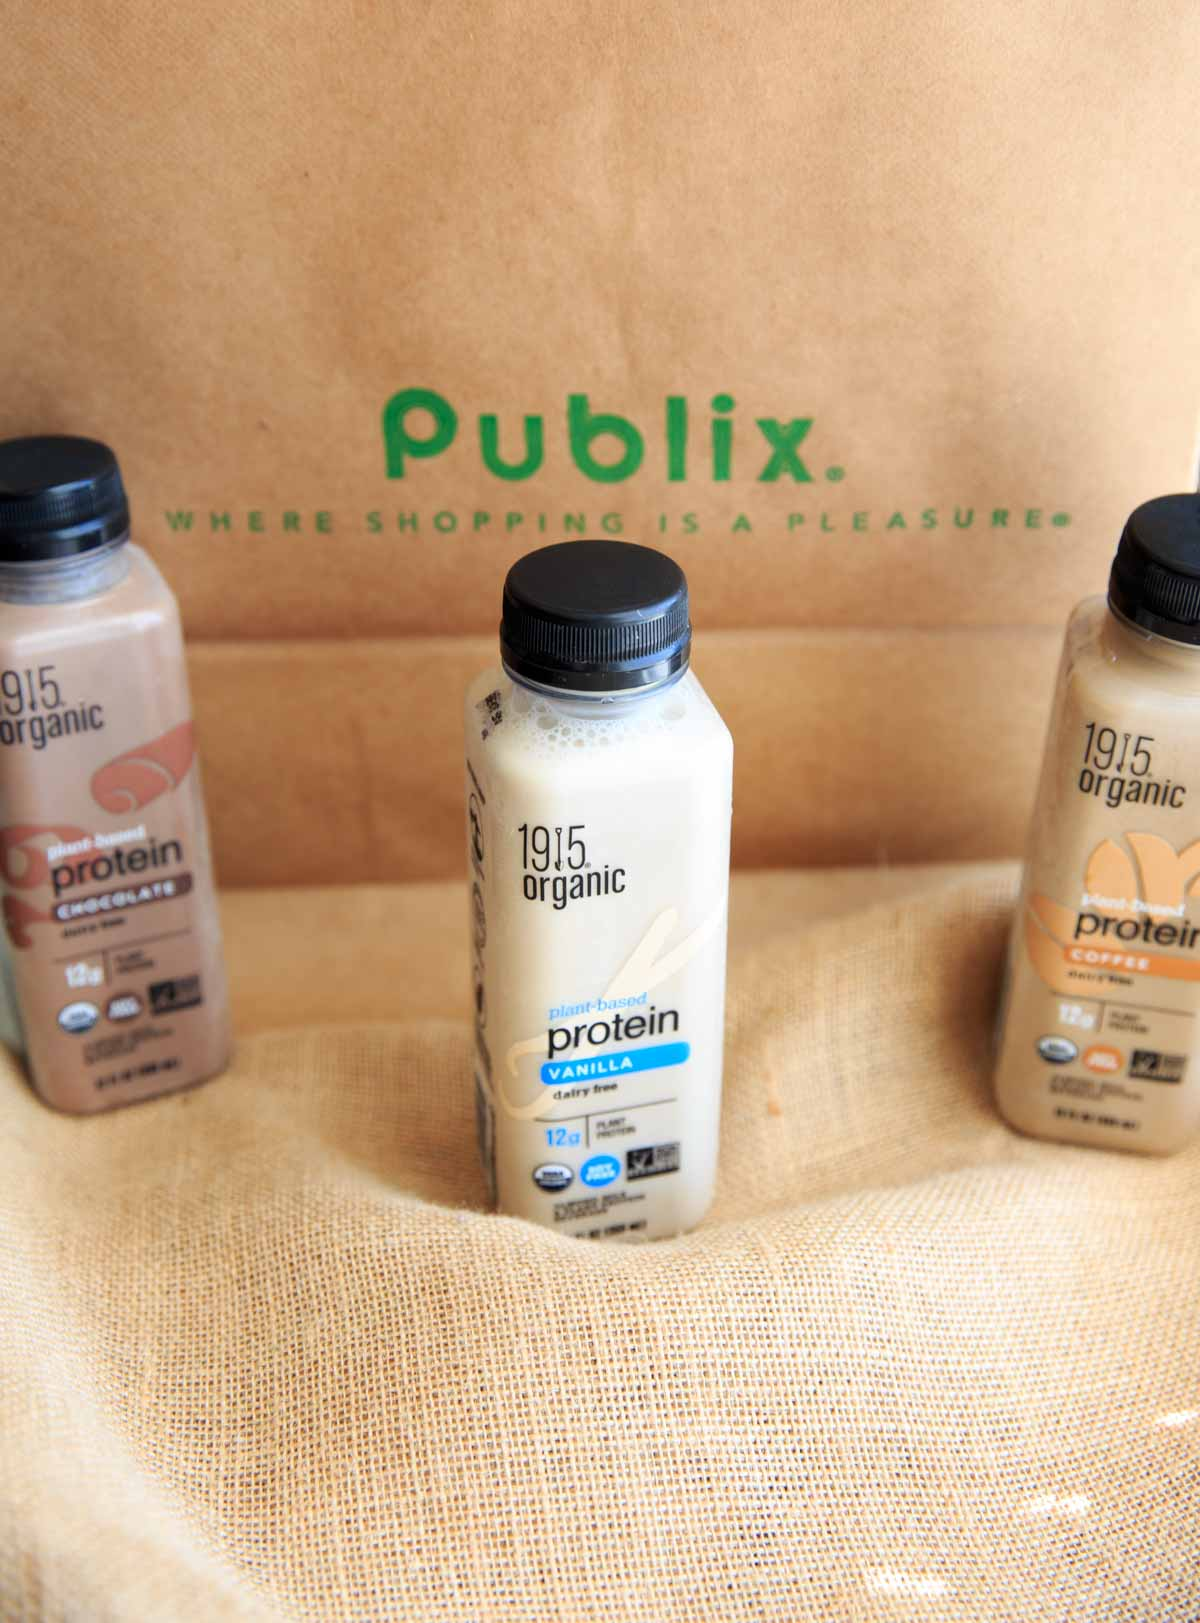 1915 Organic Protein Beverages - on Publix bag